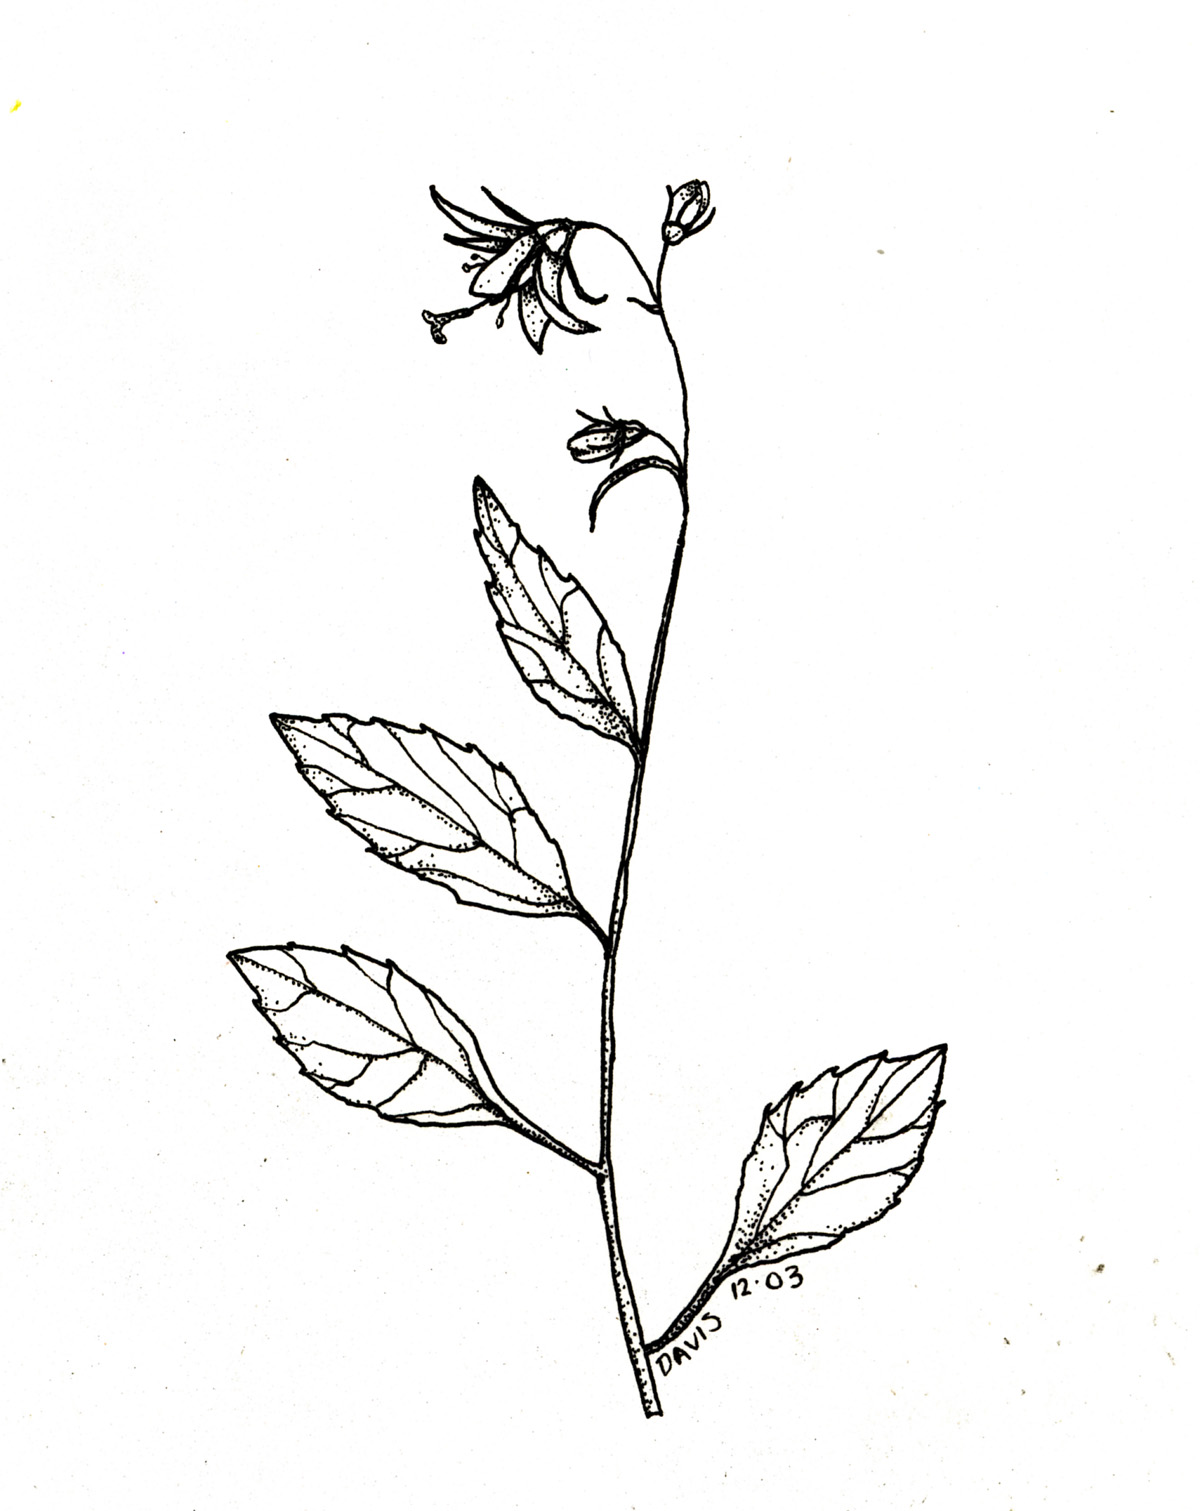 Drawn plant Archives From the Ramekin –